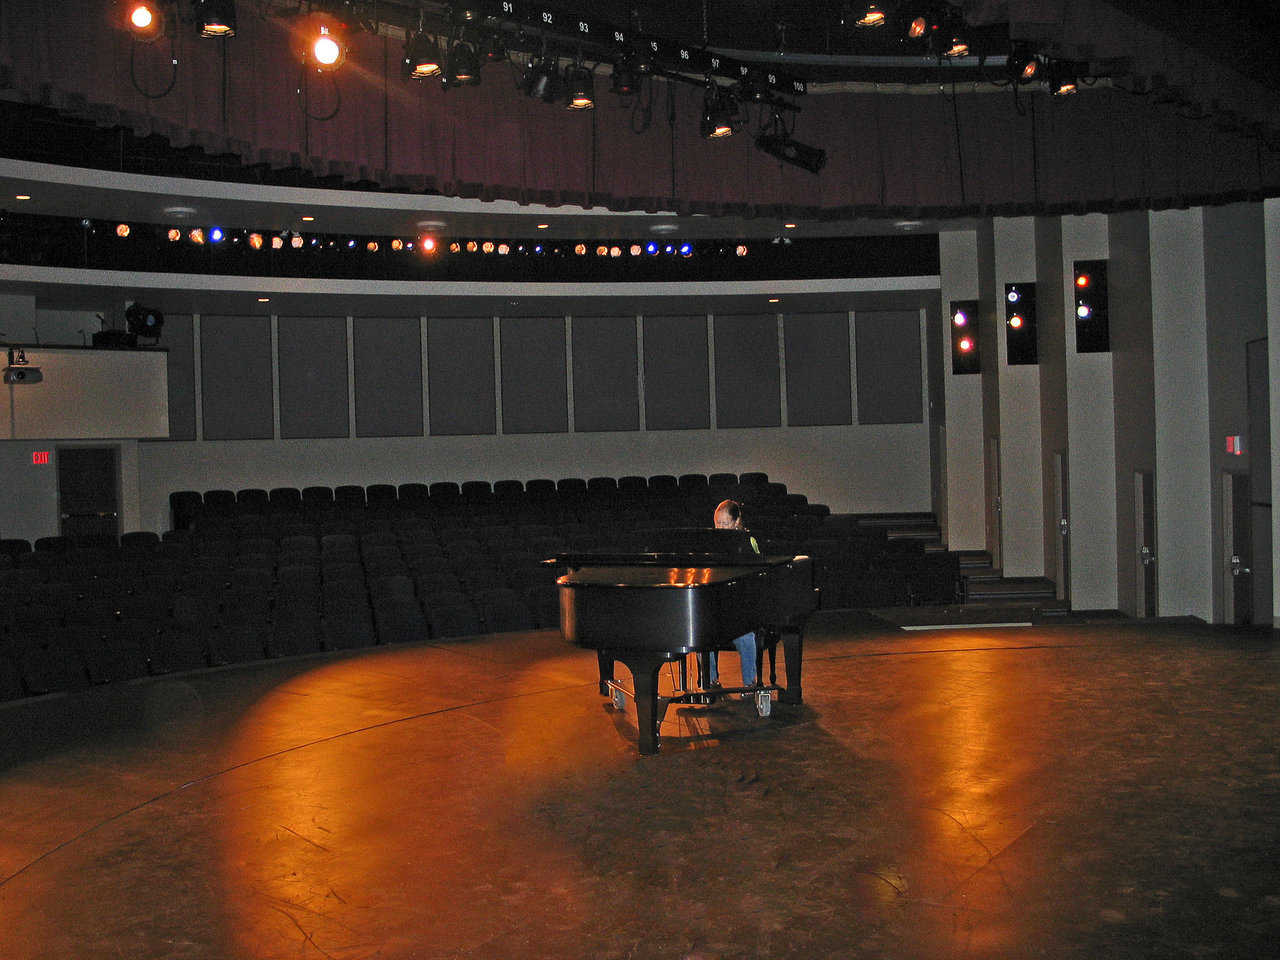 Intermediate Theater: Simple and nice. Great for music performances.